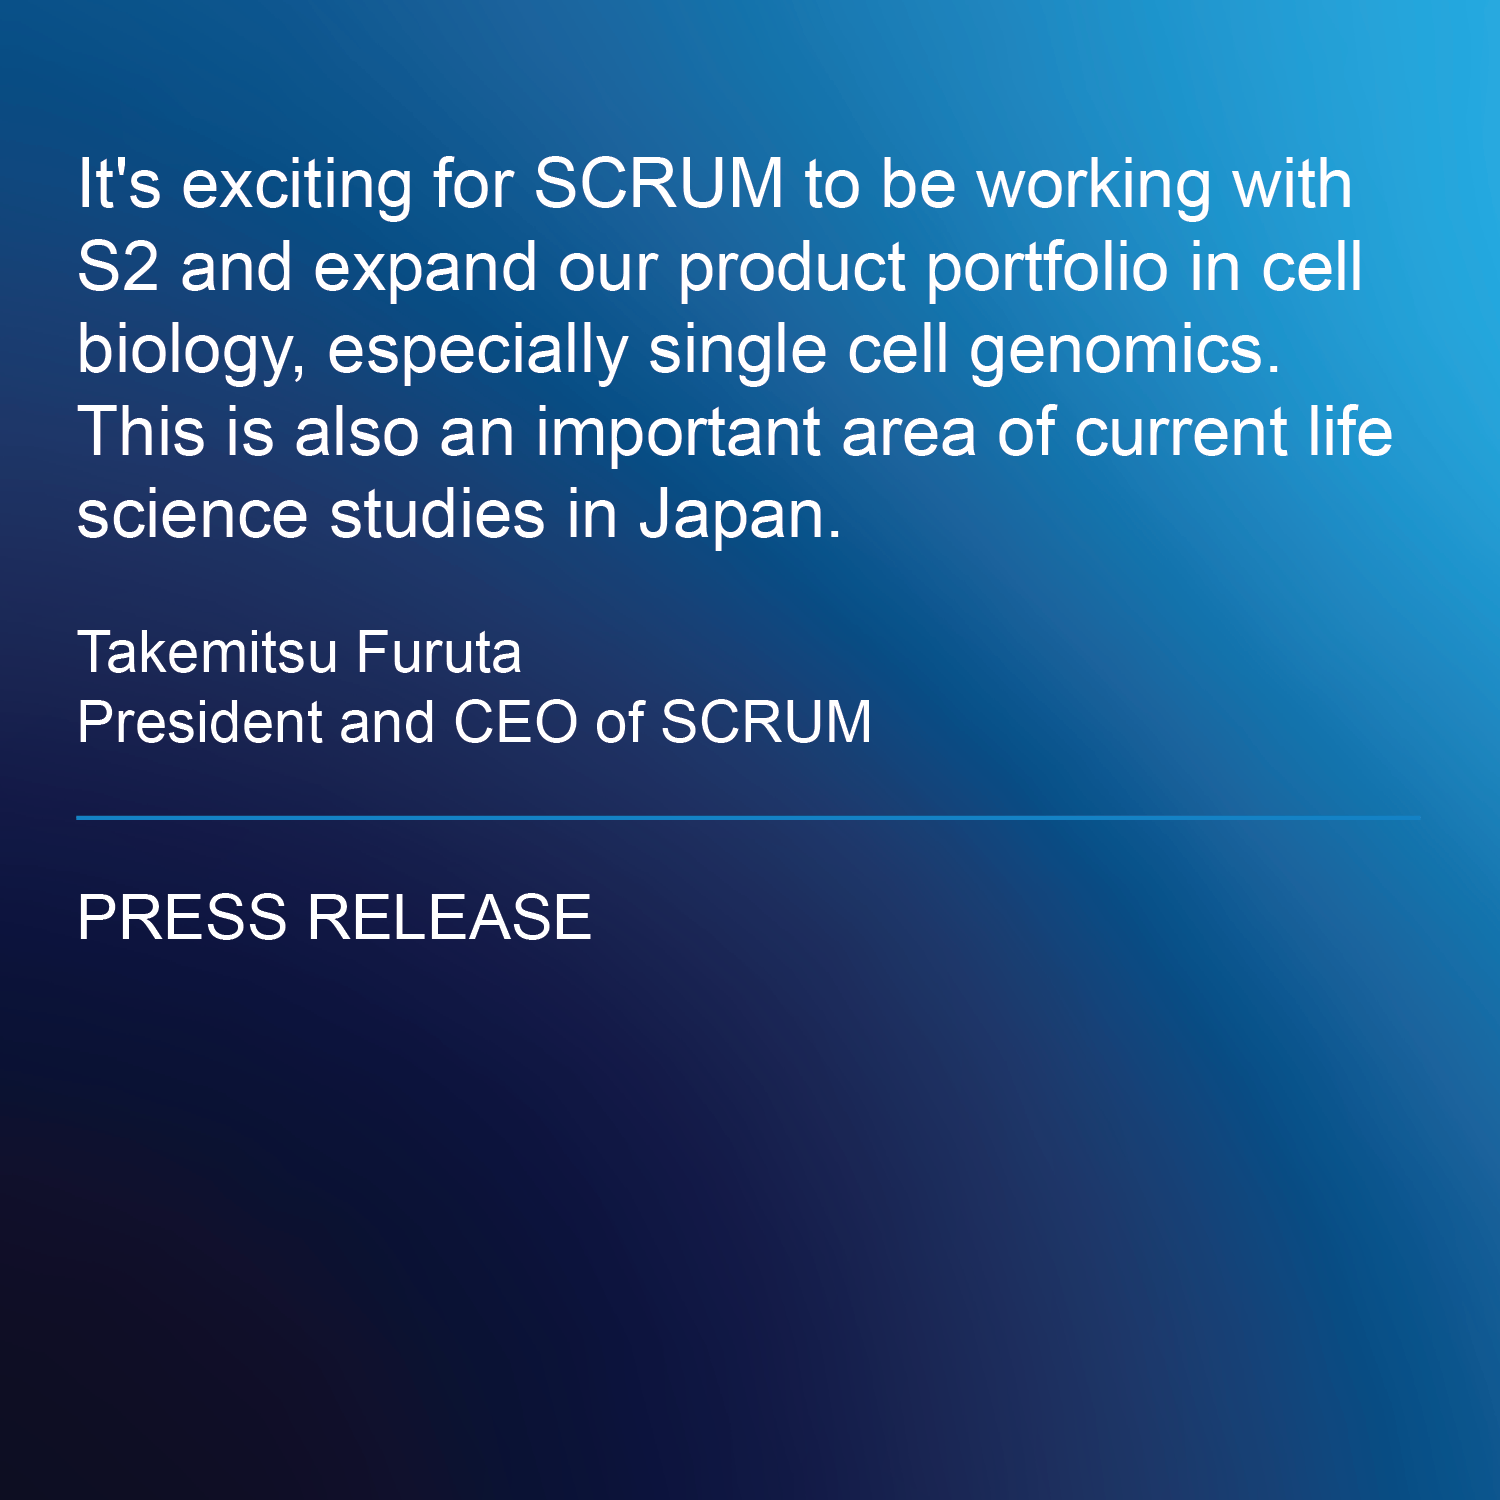 S2 Genomics Announces Asia-Pacific Distribution Partnerships For the Singulator™ 100 System with SCRUM, PharmiGene, LnCBio, Thunderbio Science And TrendBio To Accelerate Single-Cell Research